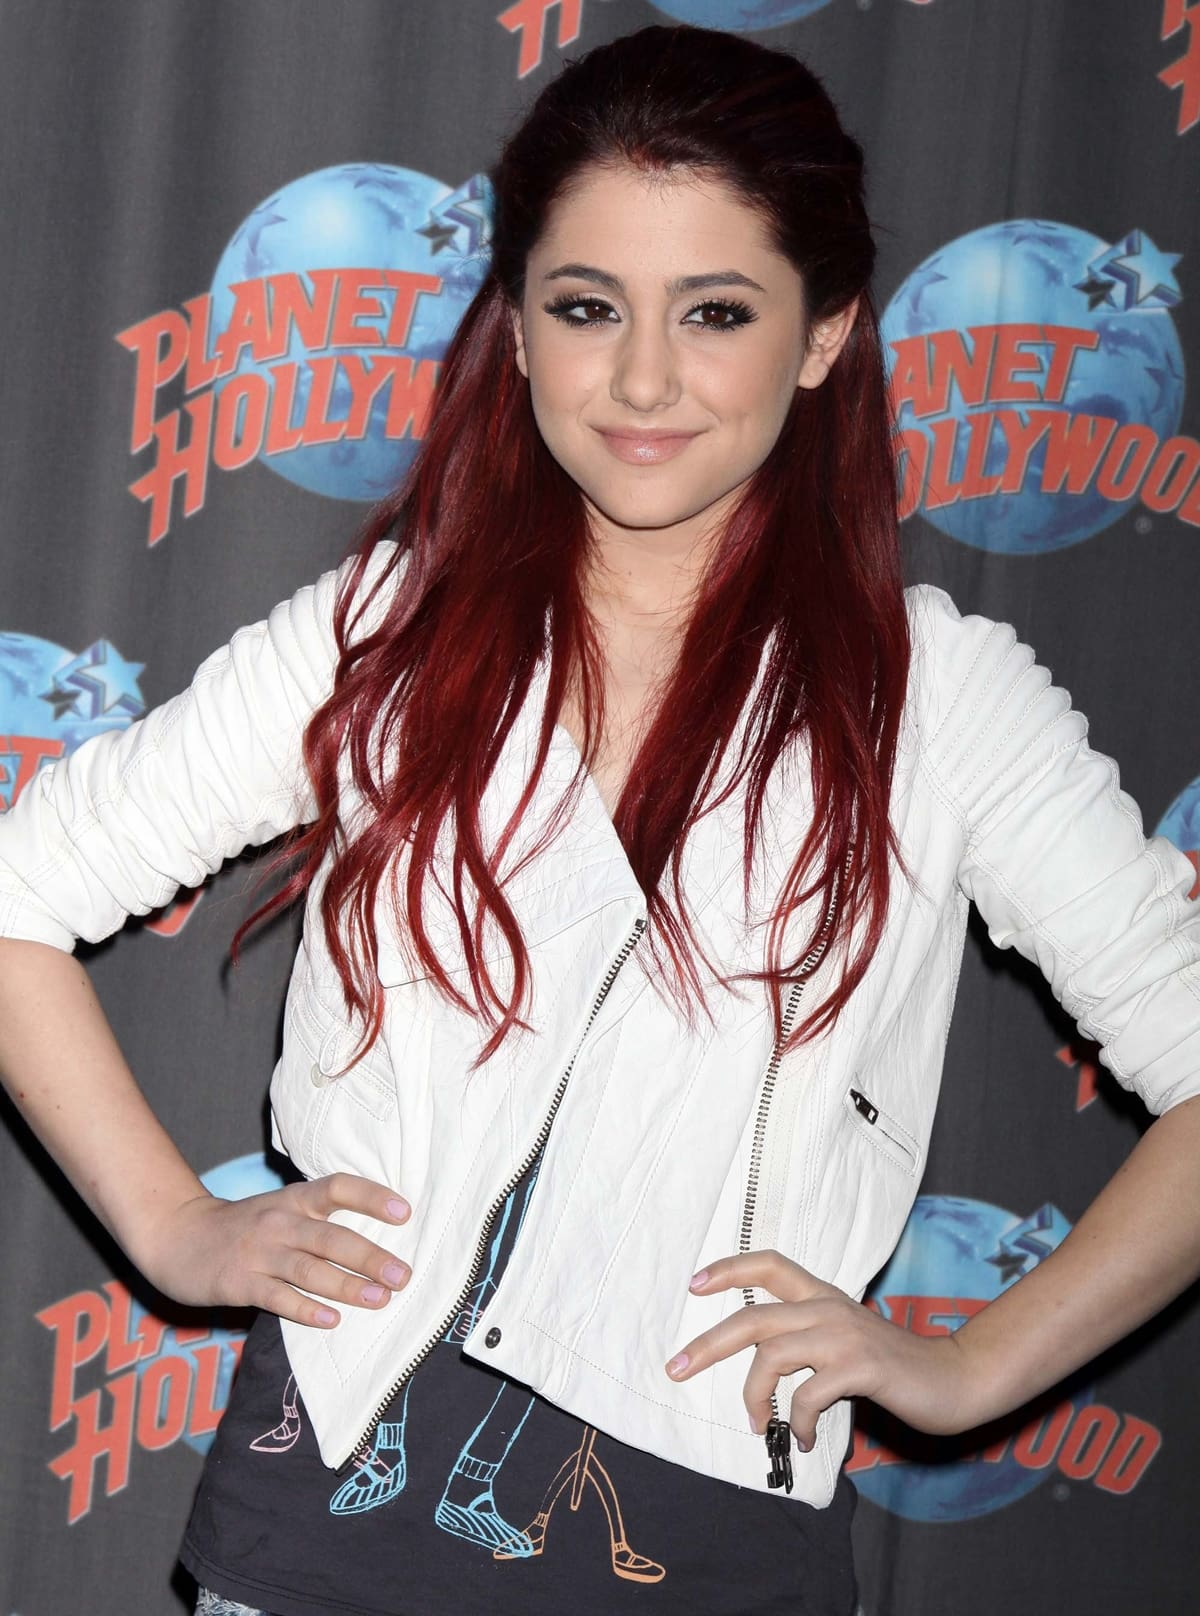 """Ariana Grande promotes Nickelodeon's """"Victorious"""" at Planet Hollywood Times Square"""